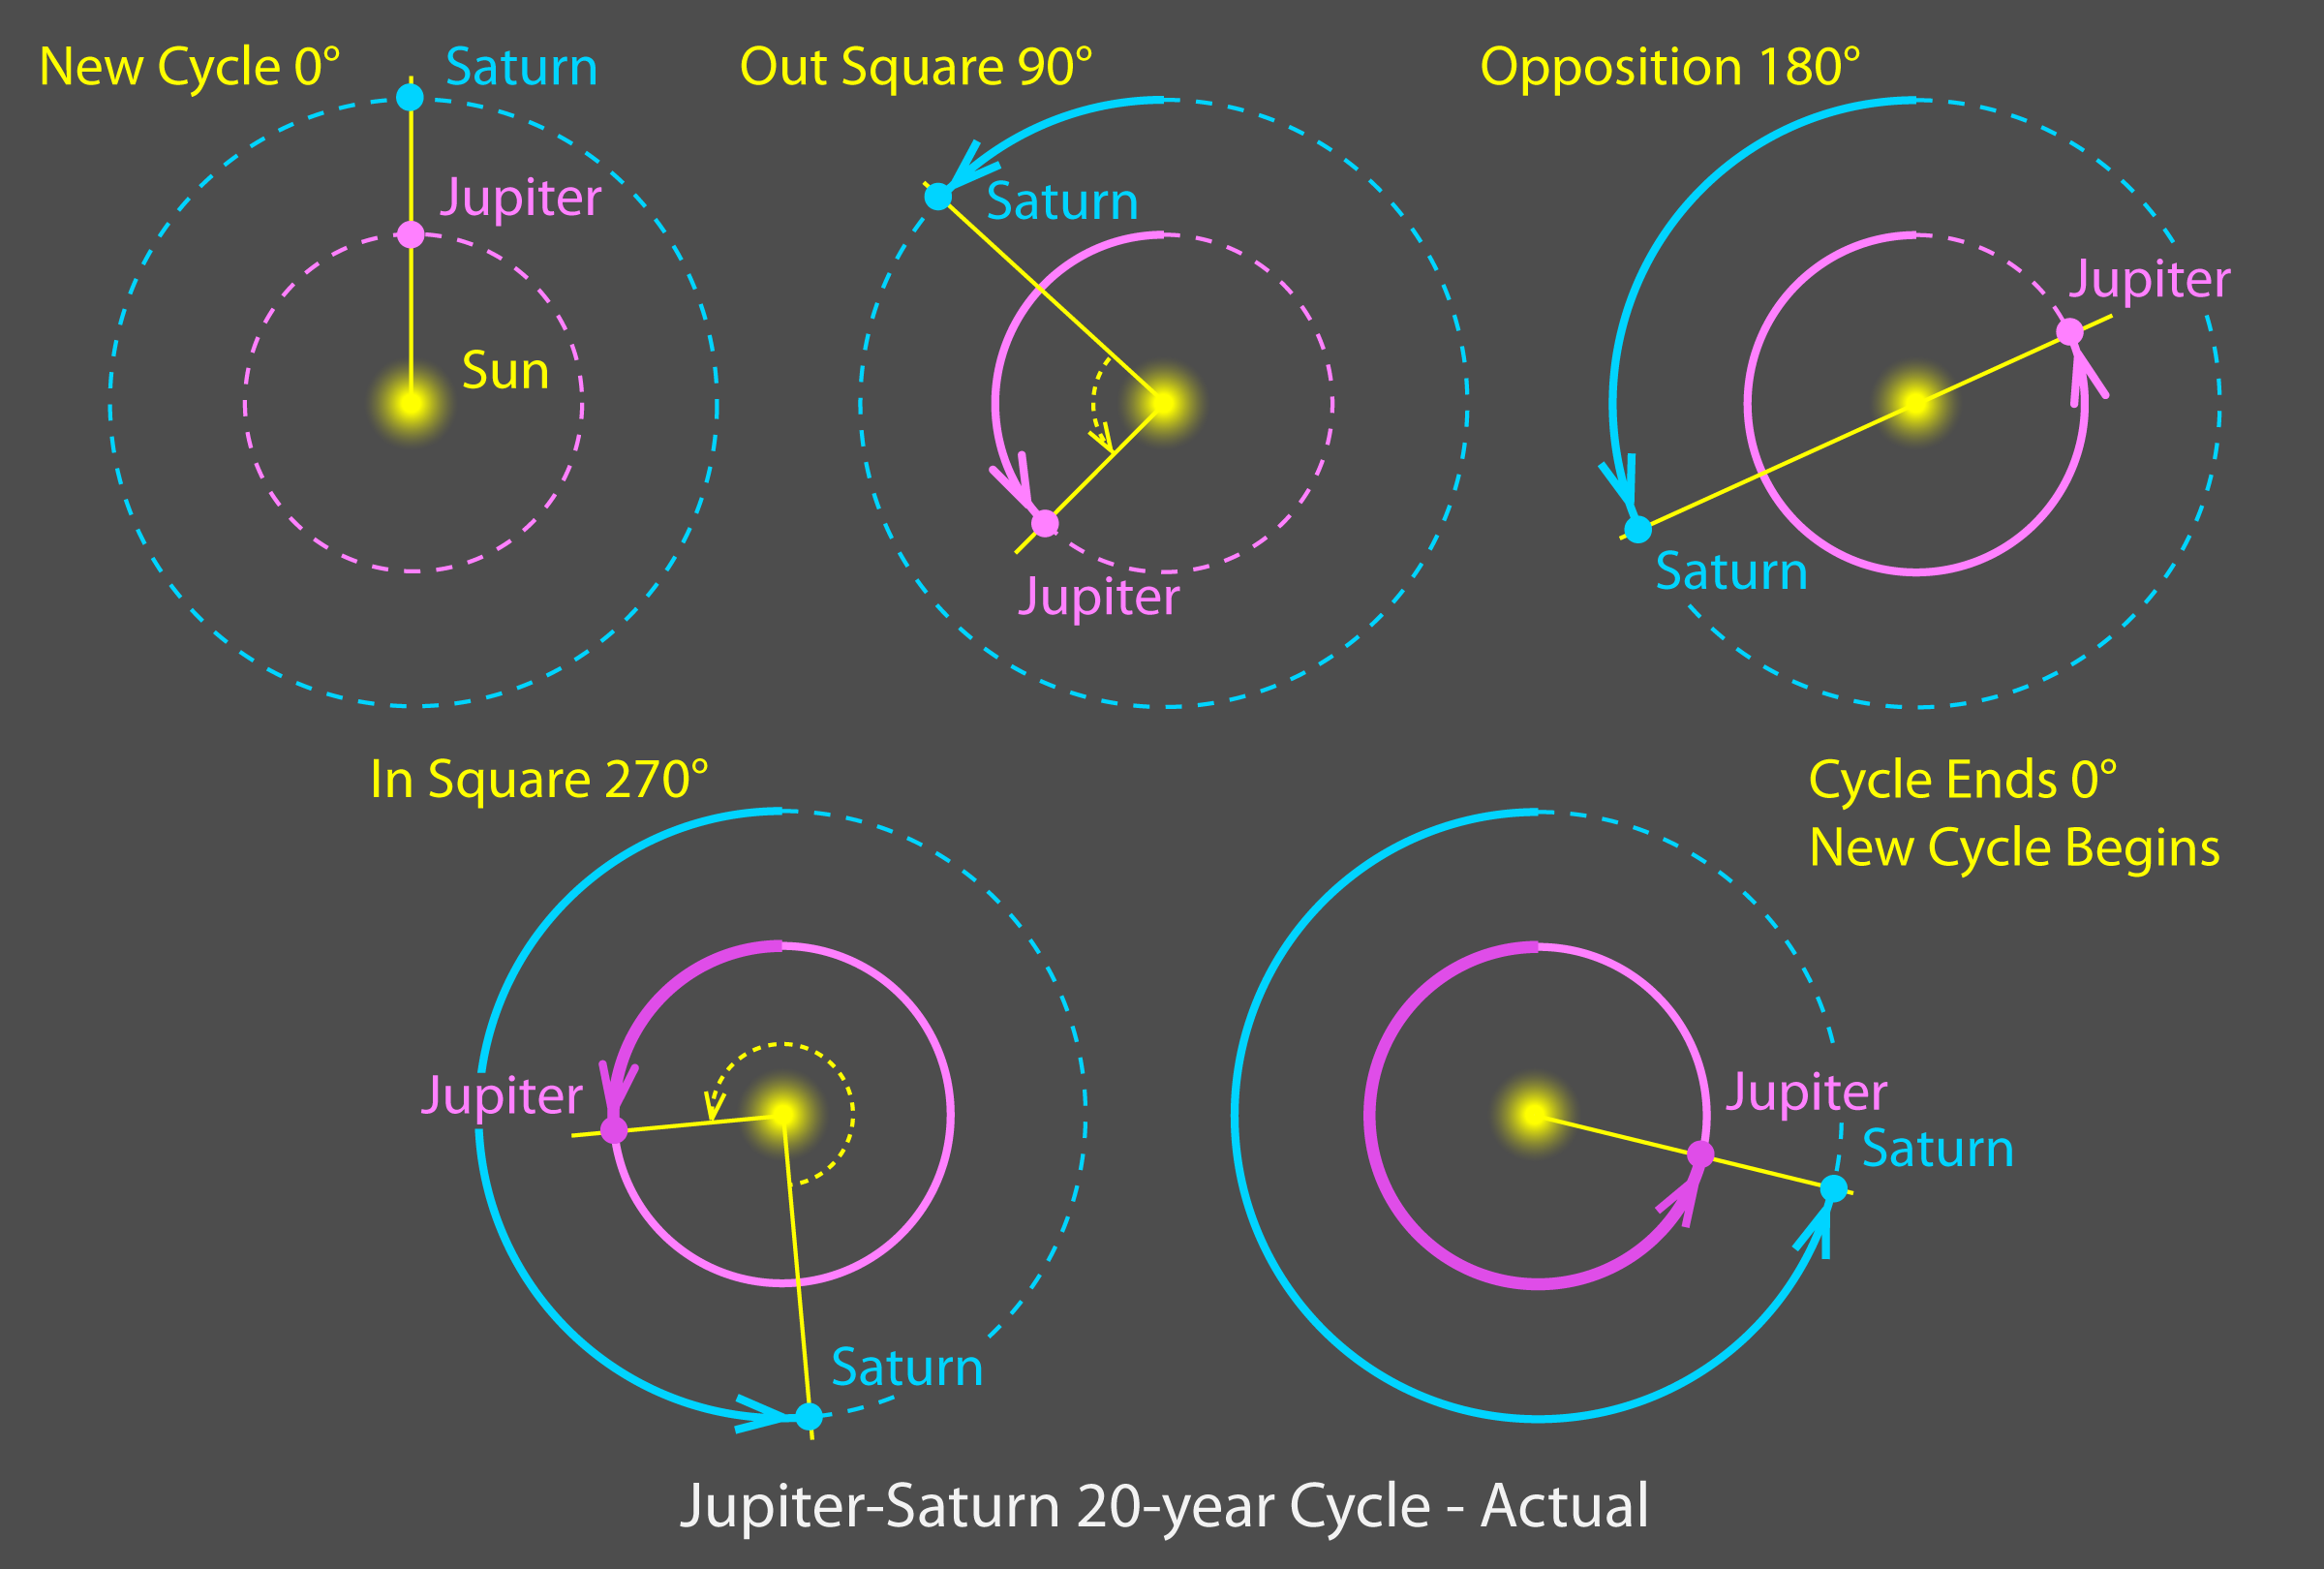 Jup-Sat-Cycle-Actual copy